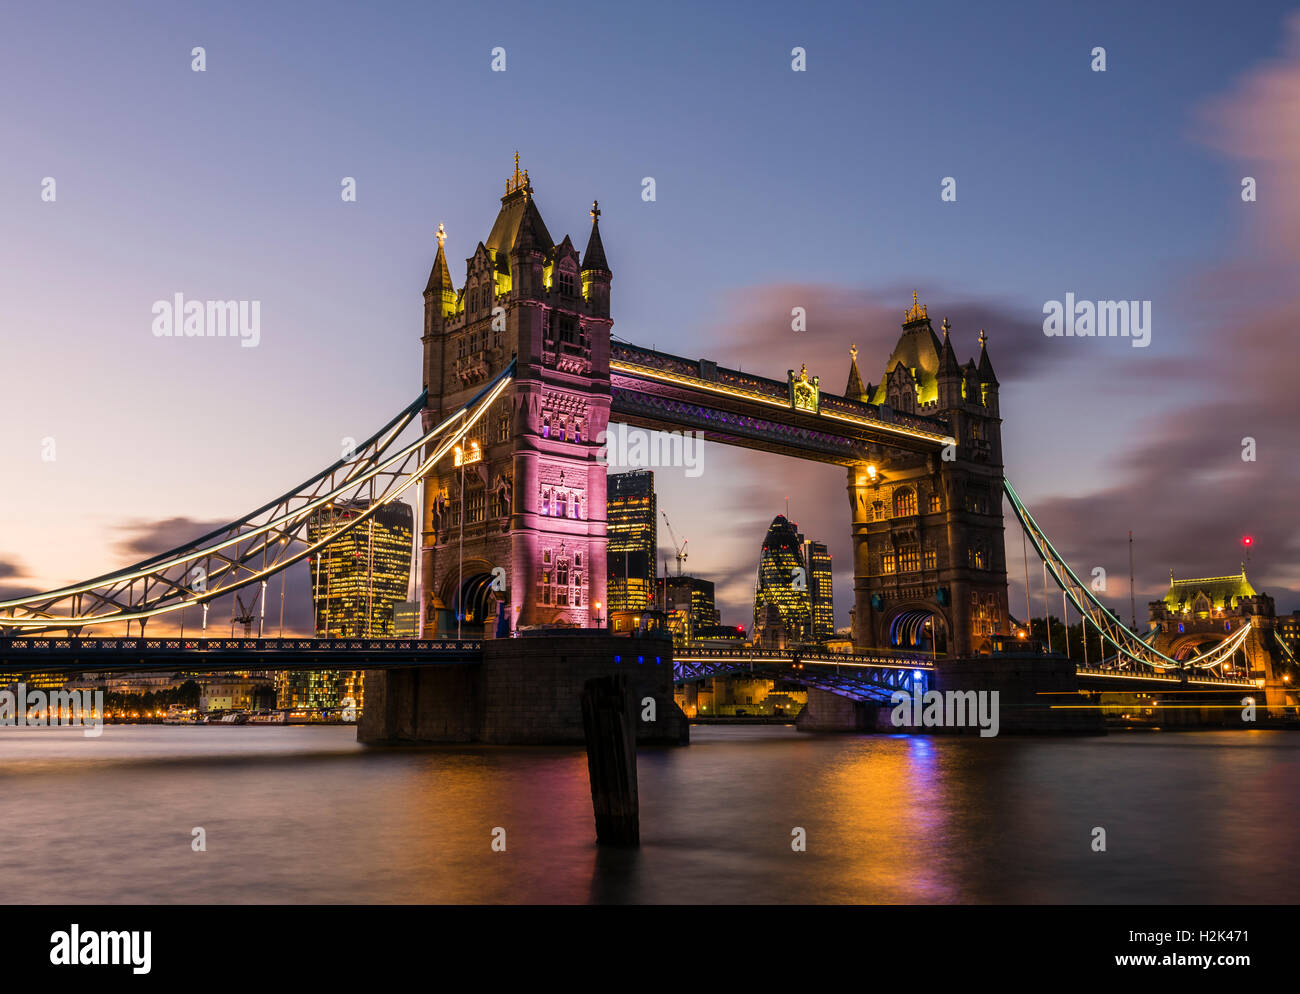 Lights and boats captured at dusk in a long exposure of Tower Bridge, London, UK - Stock Image